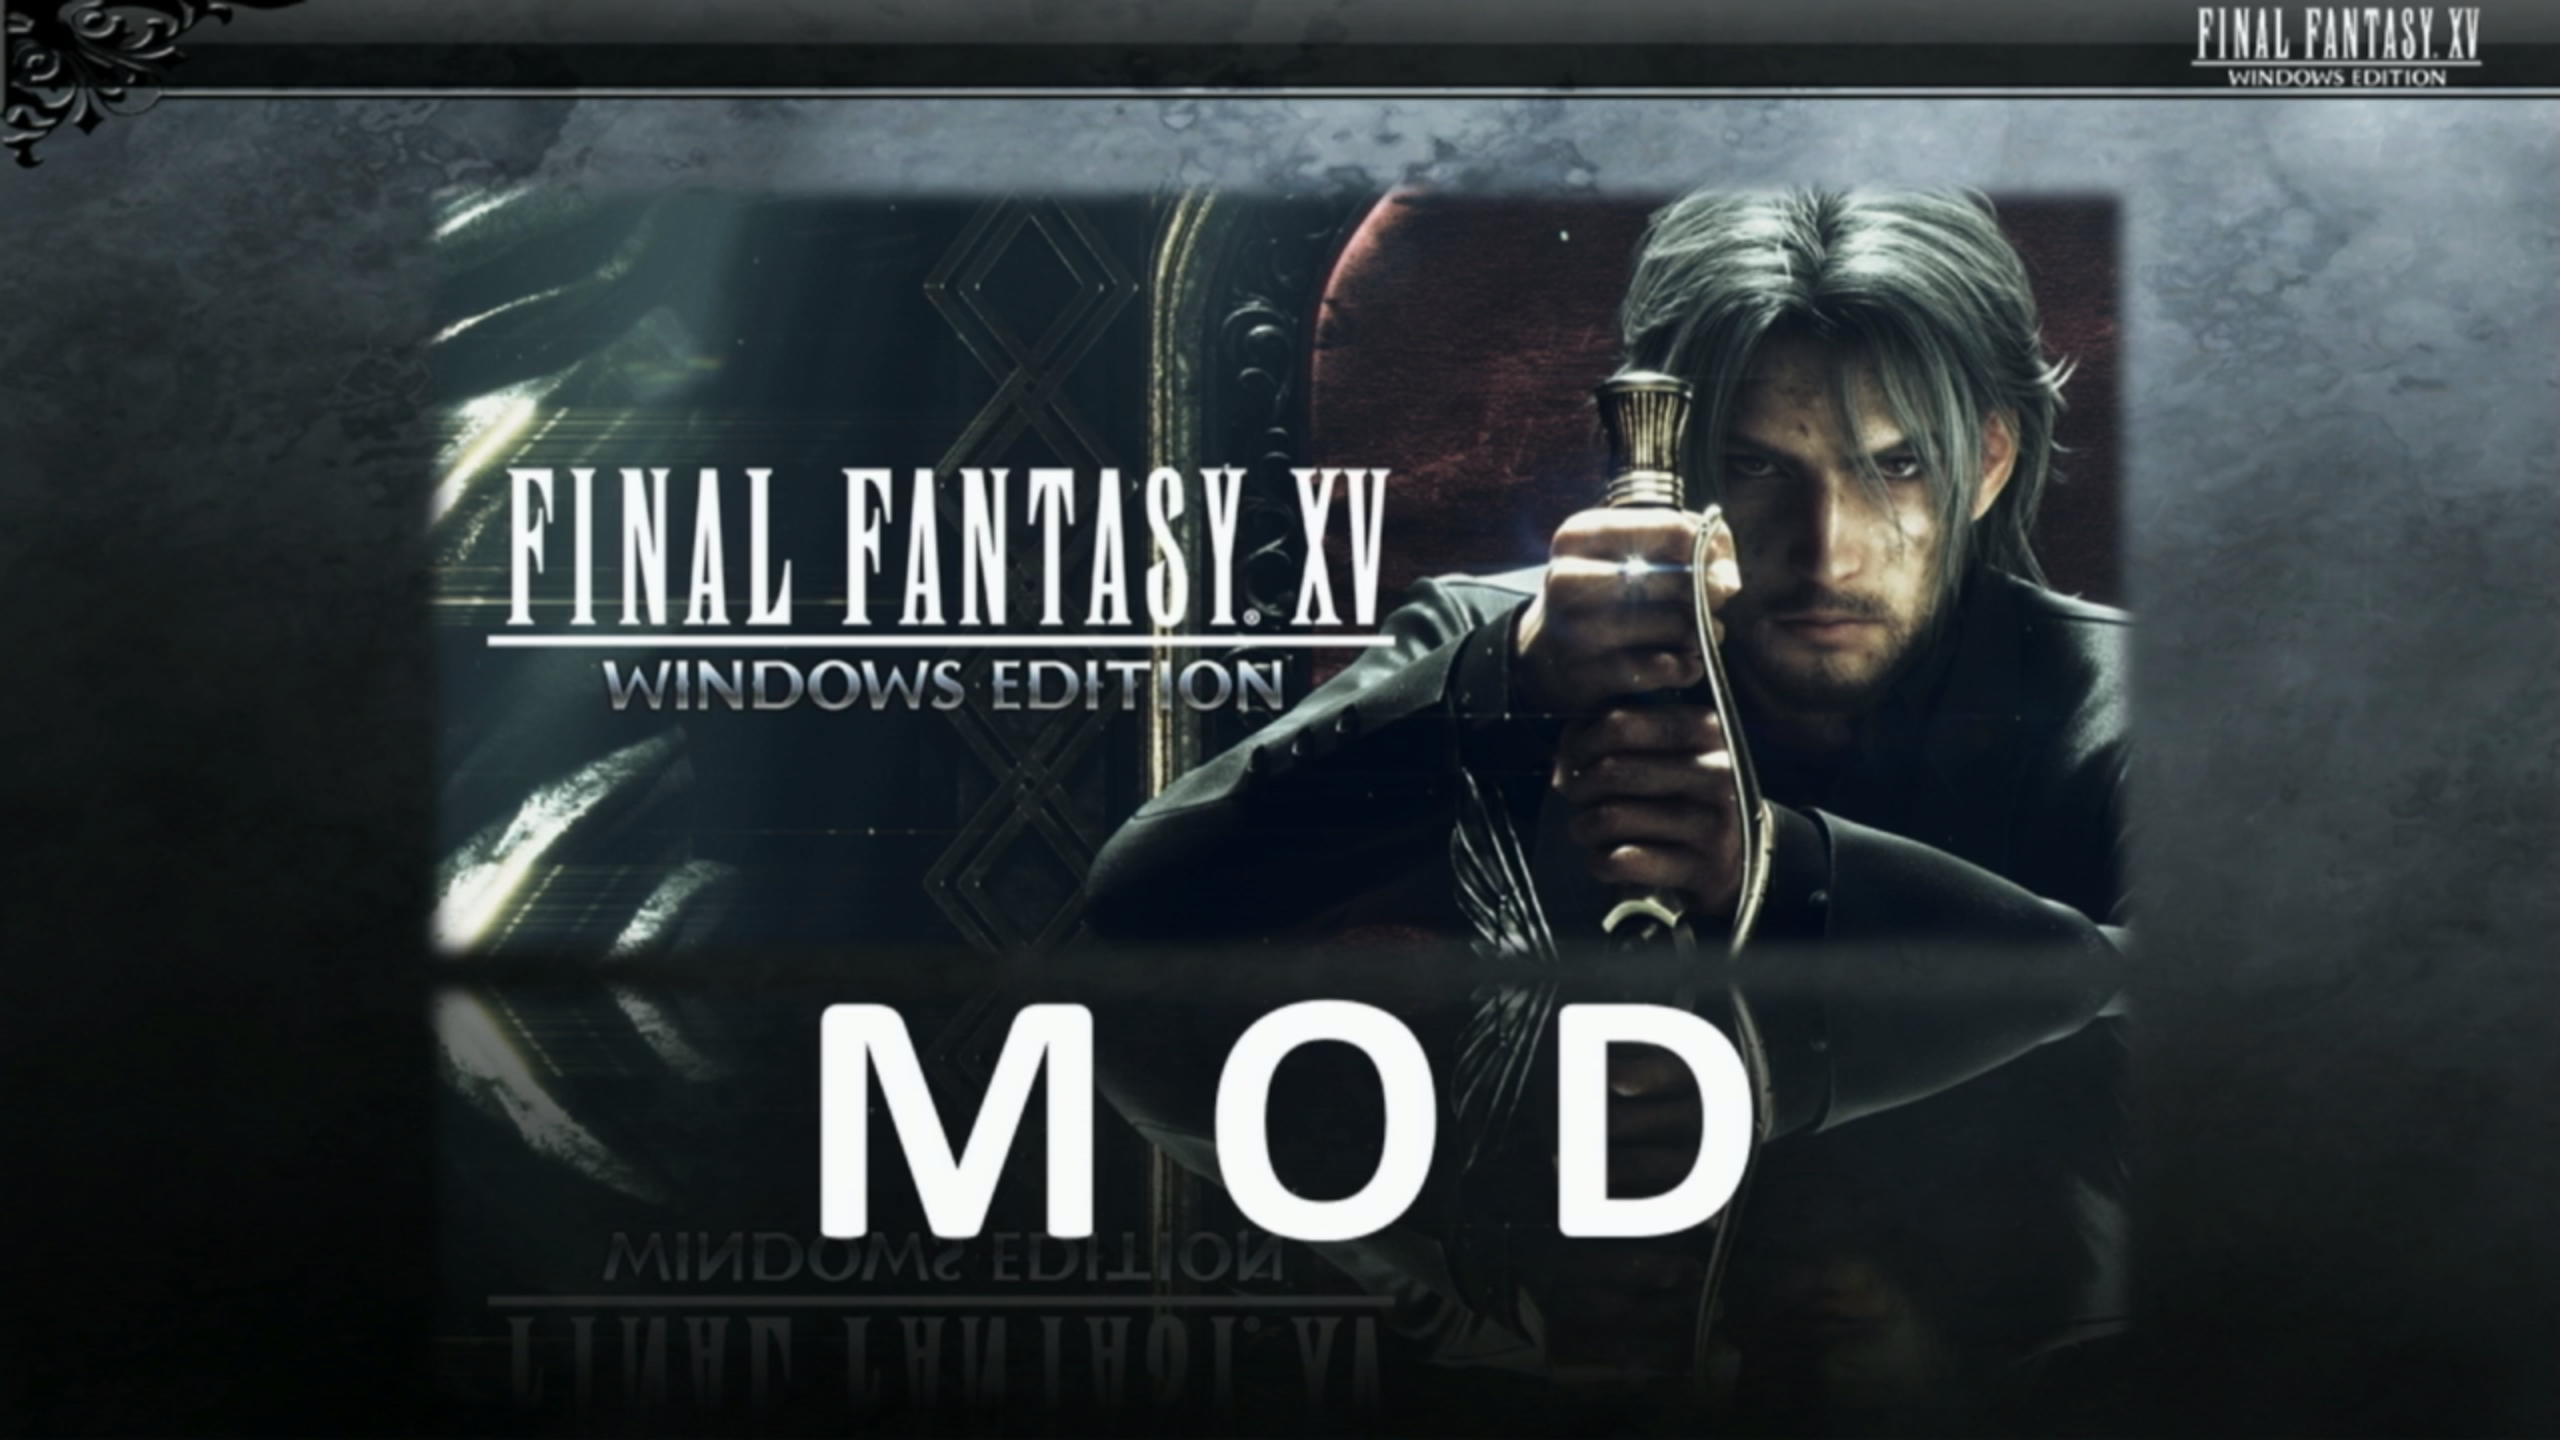 Final Fantasy XV's level editor, mod support and more for PC